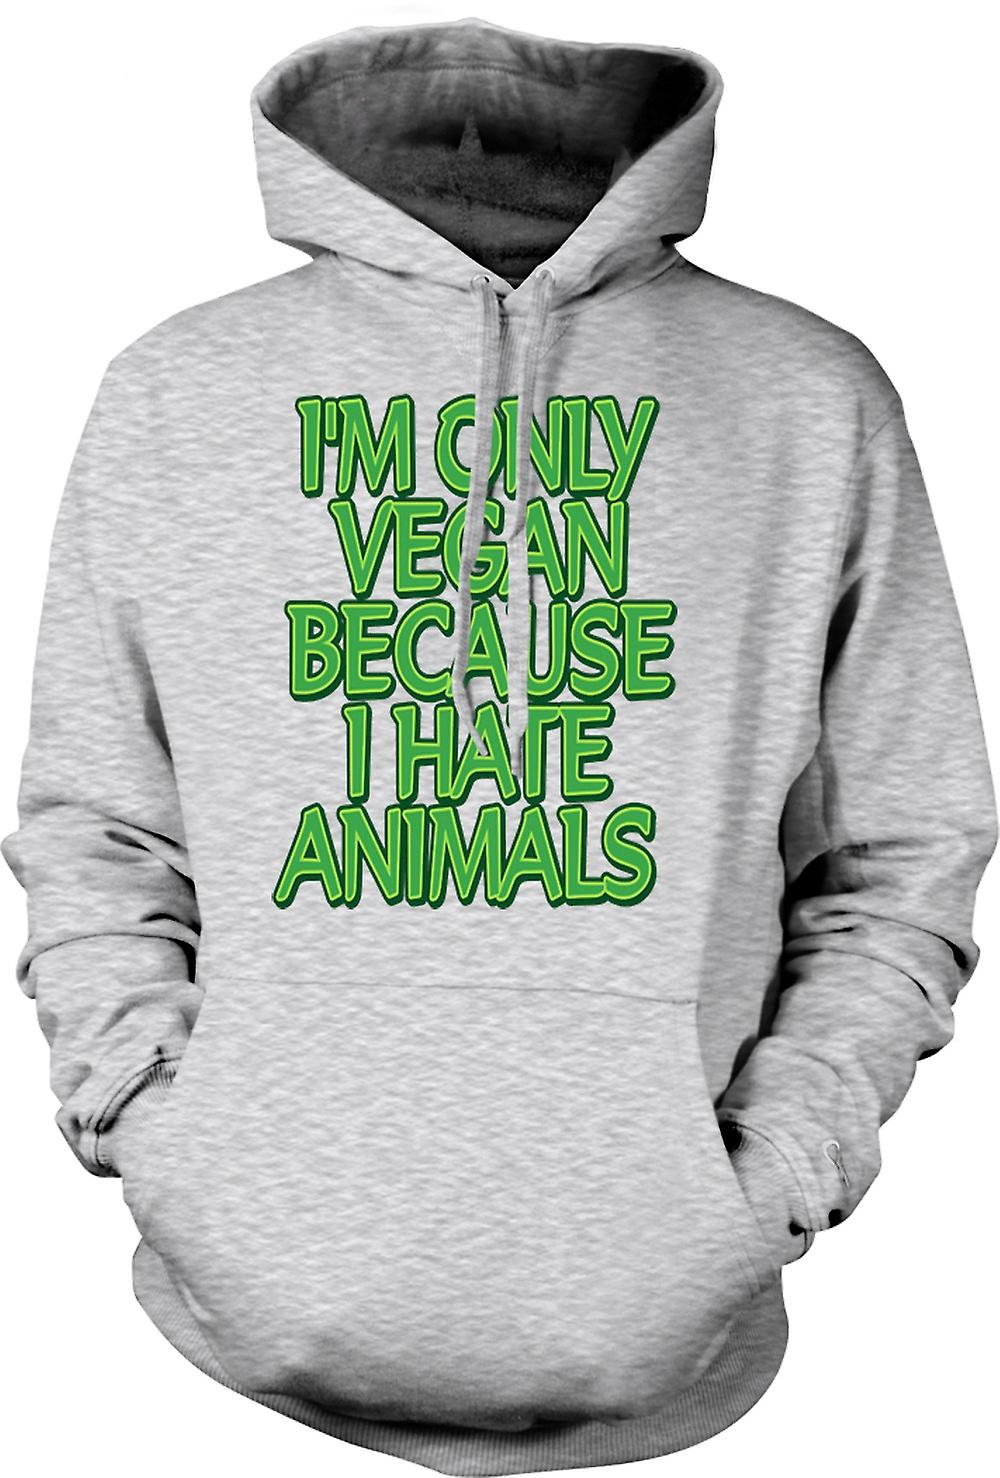 Mens Hoodie - I'm Only Vegan Because I Hate Animals